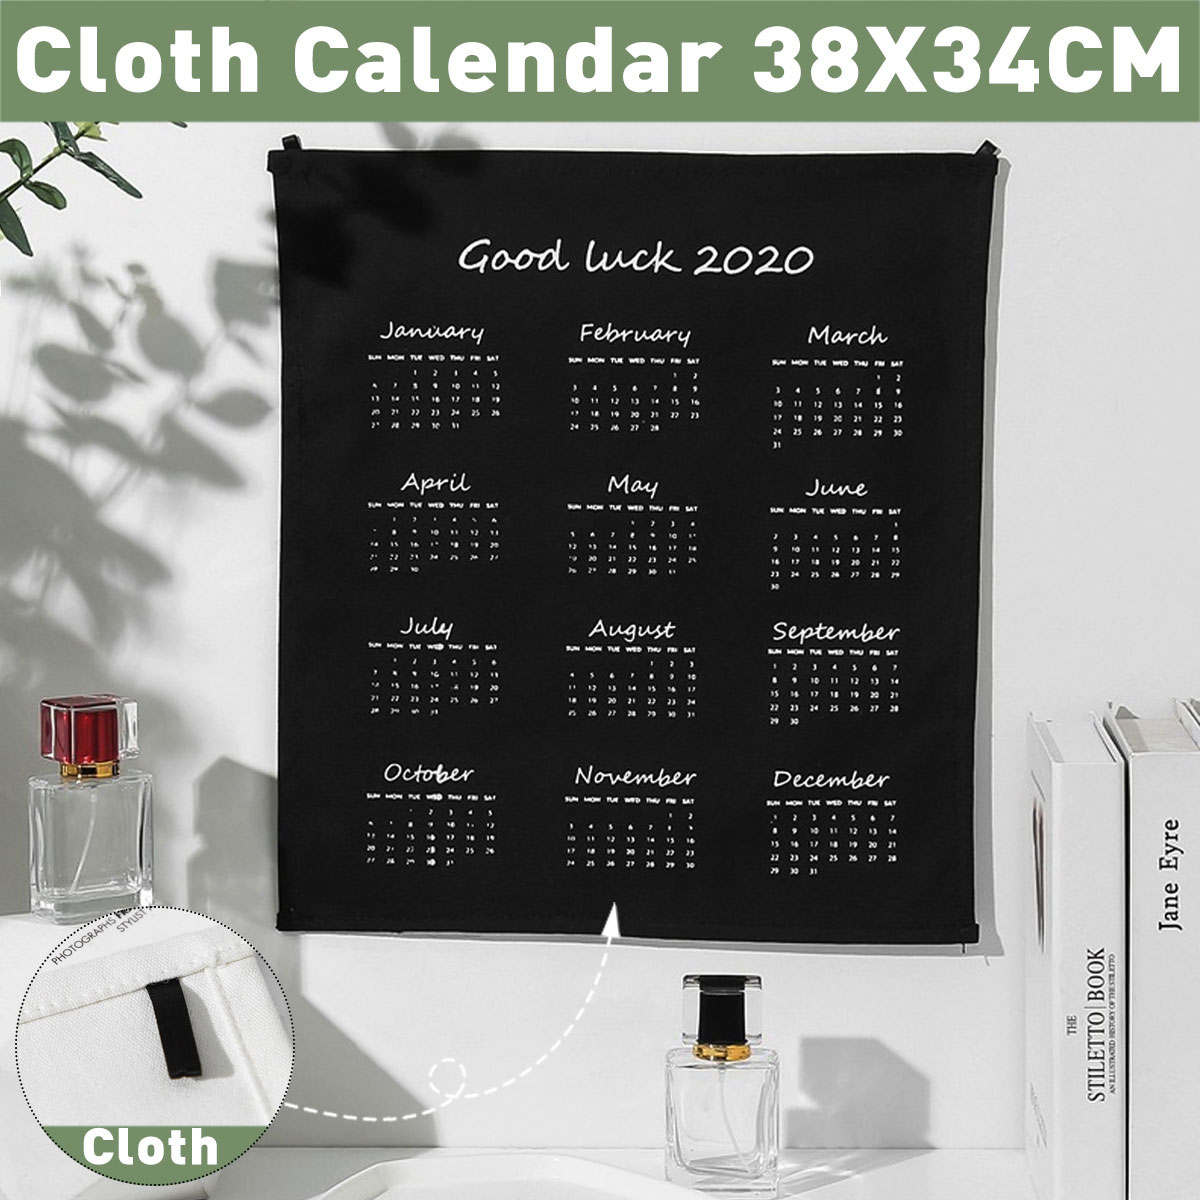 2020 Cloth Wall Calendar Black White Simple Modern Style Wall Hanging For Home Livingroom Bedroom 15 13inch Walmart Canada